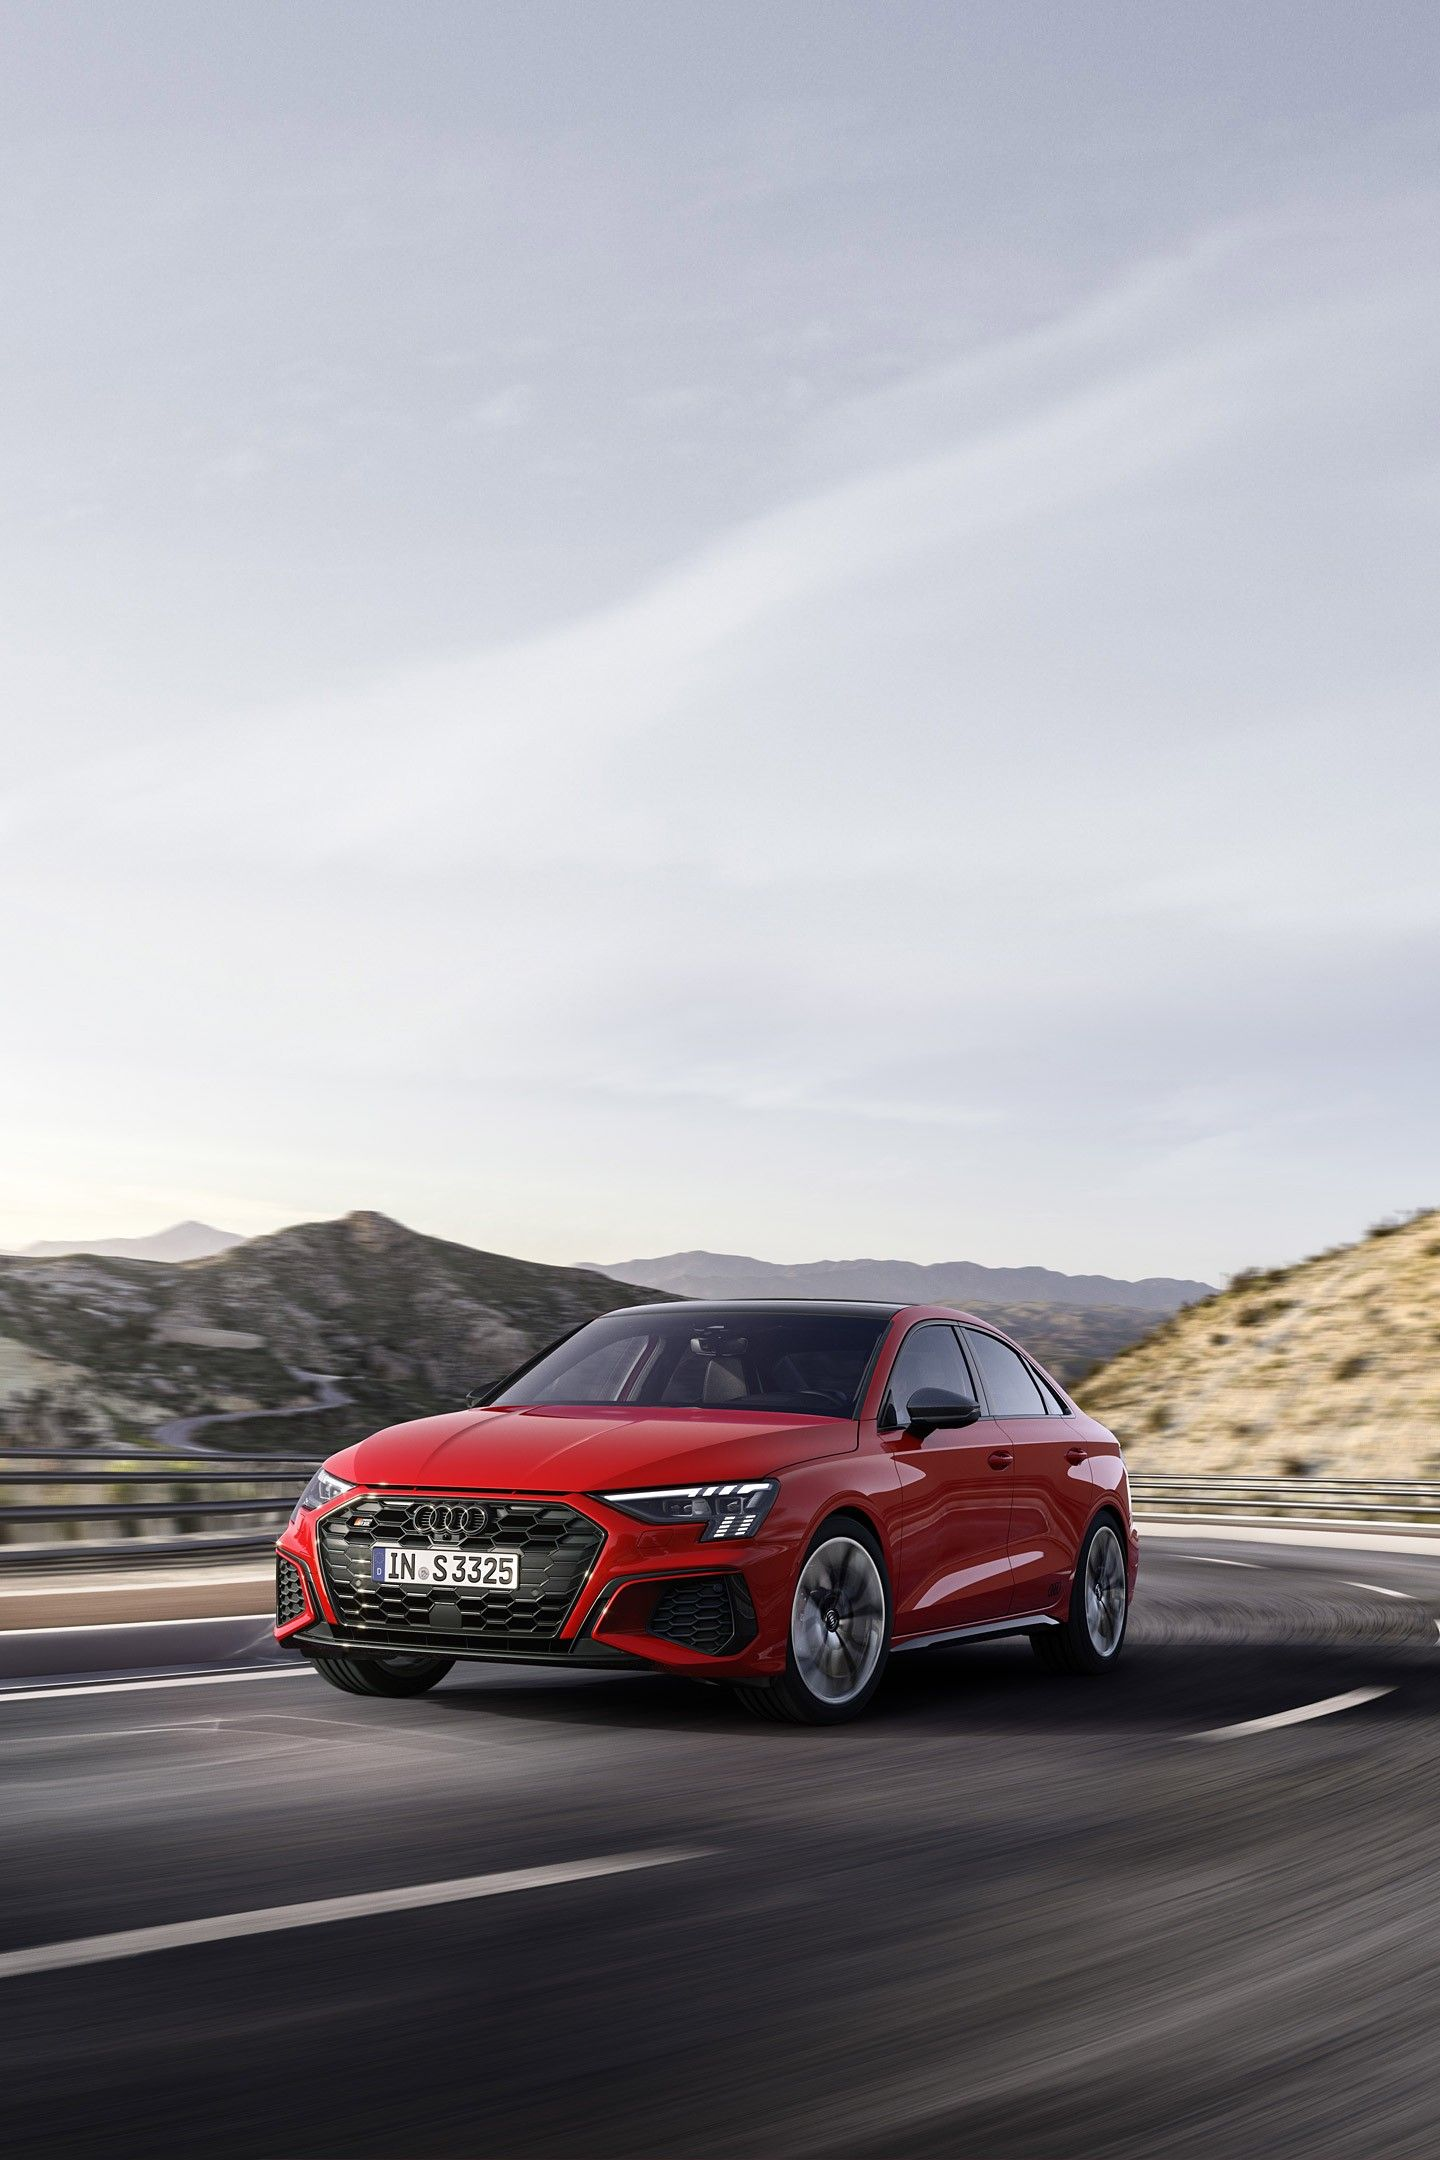 Audi A3 2022 Wallpapers 1440x2160 In 2021 Wallpaper Downloads Audi A3 Android Wallpaper